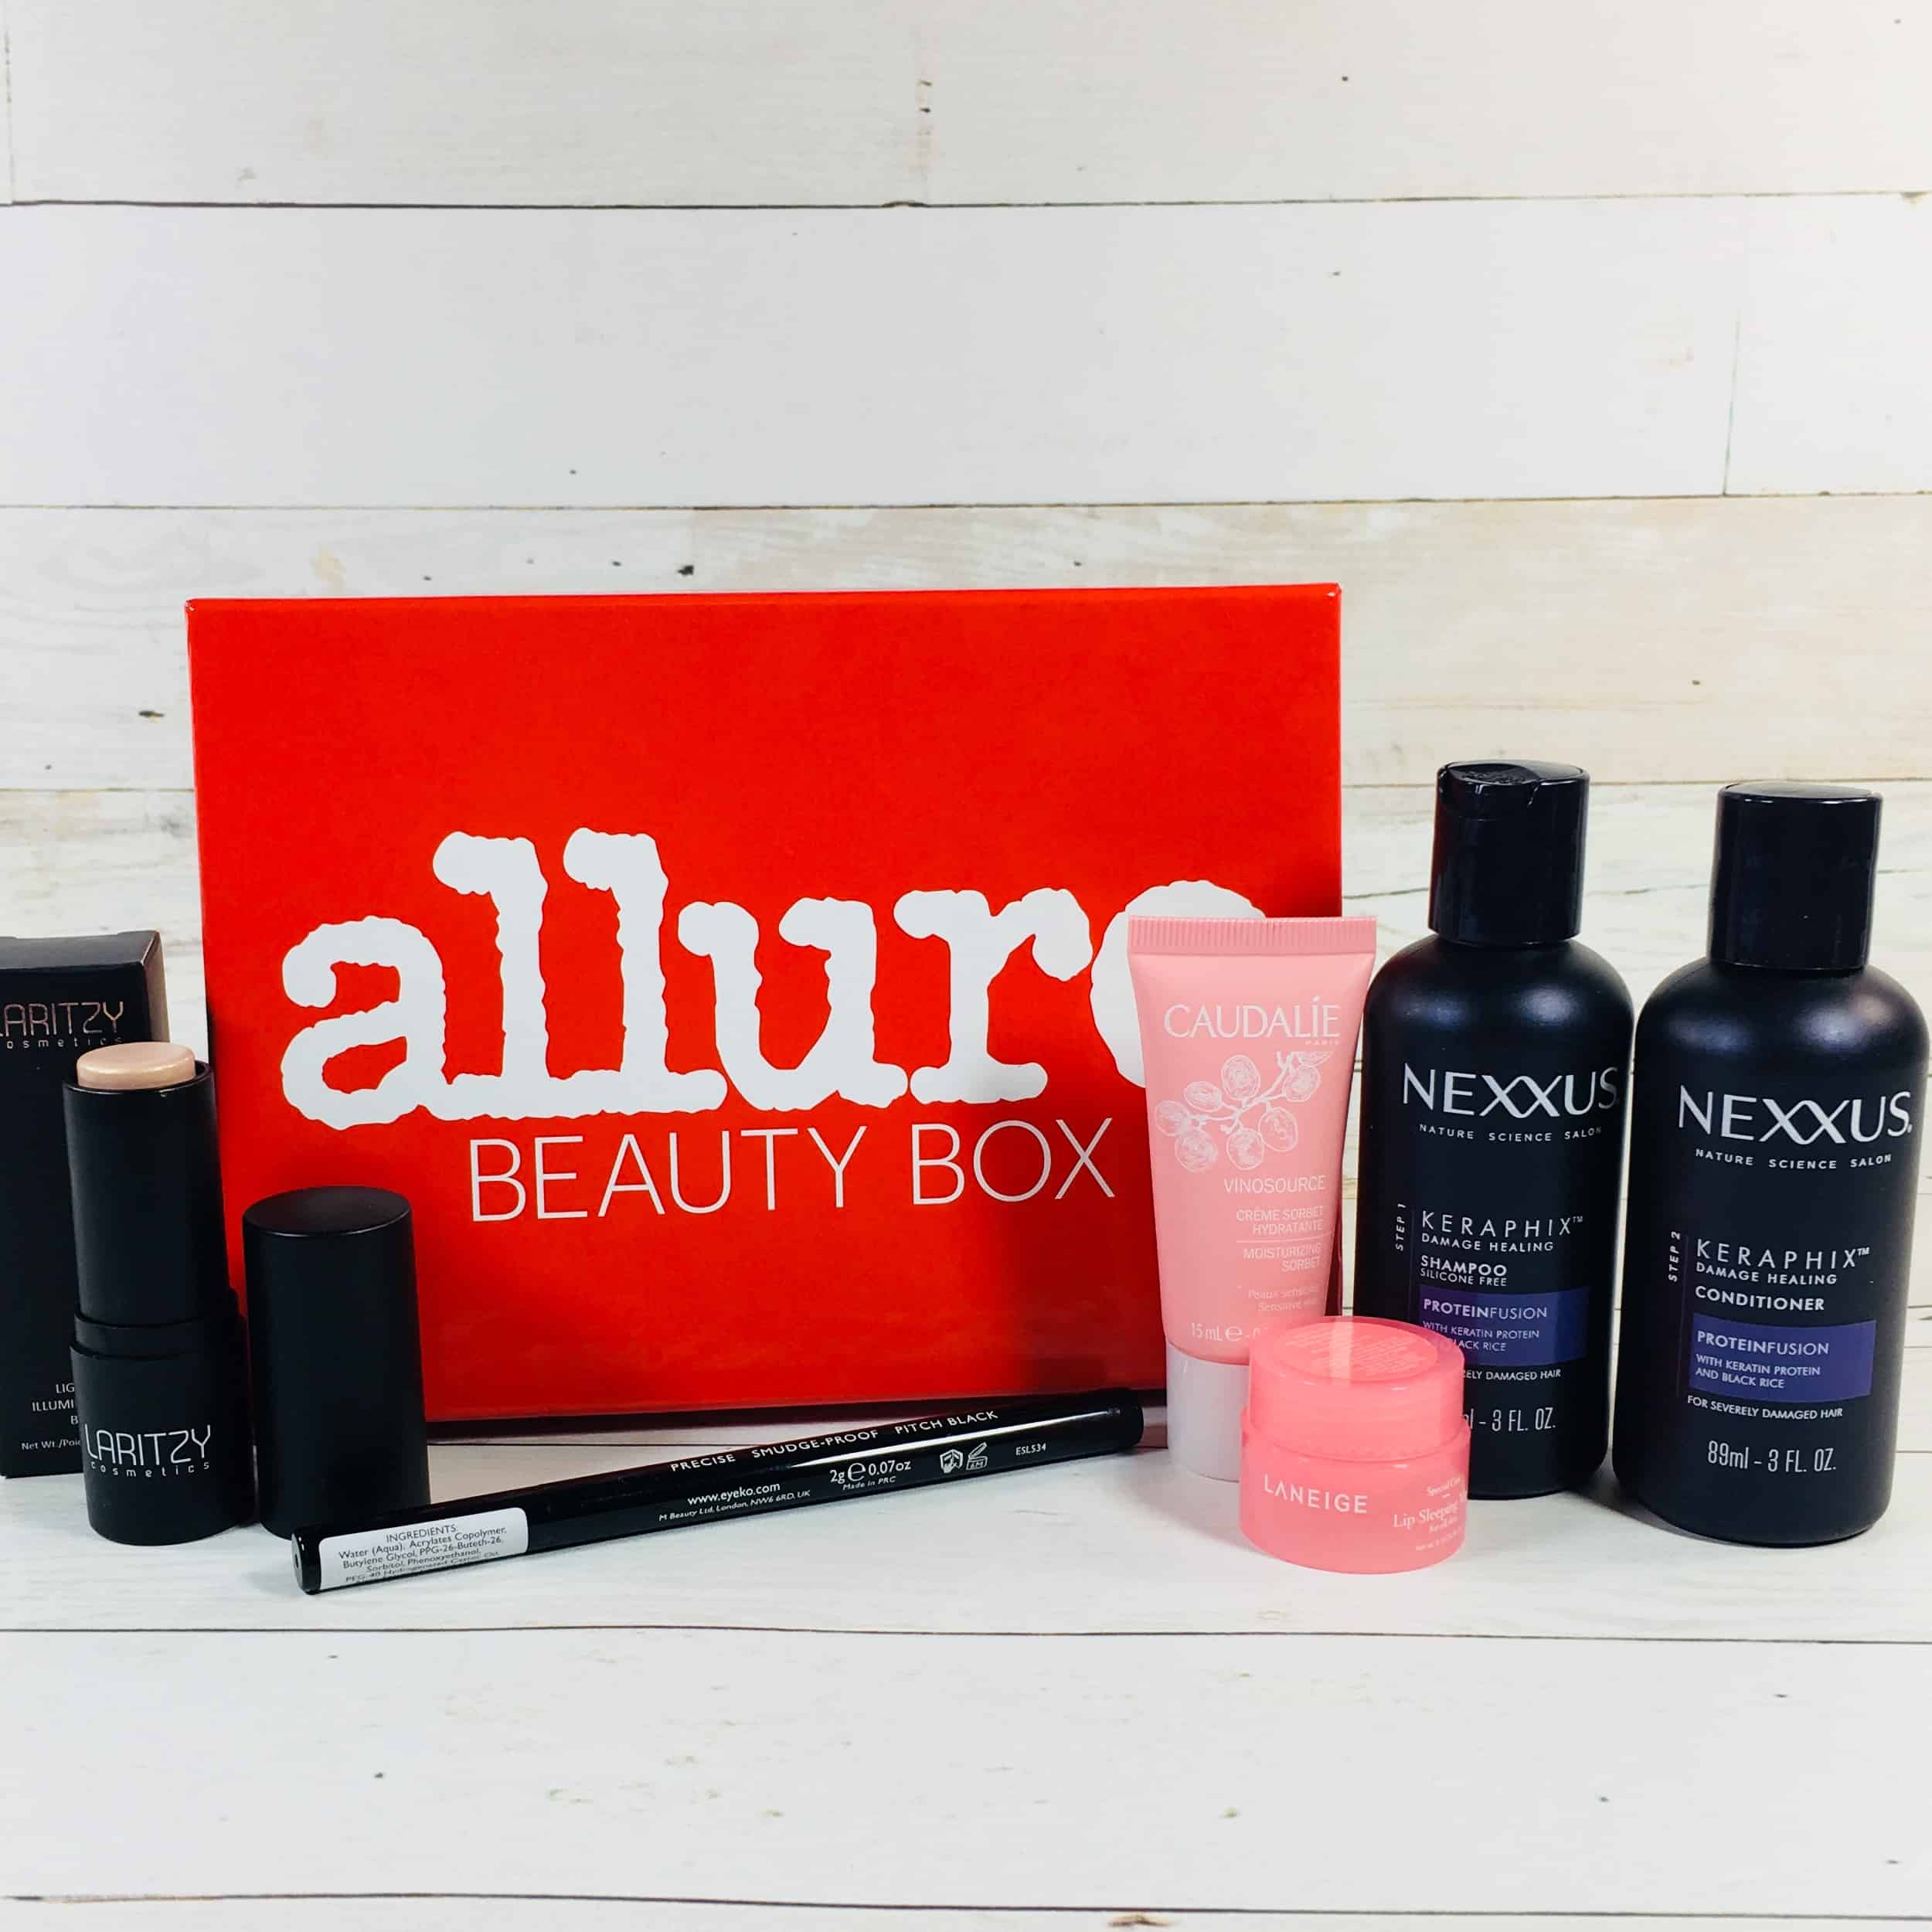 Allure Beauty Box August 2018 Subscription Box Review & Coupon